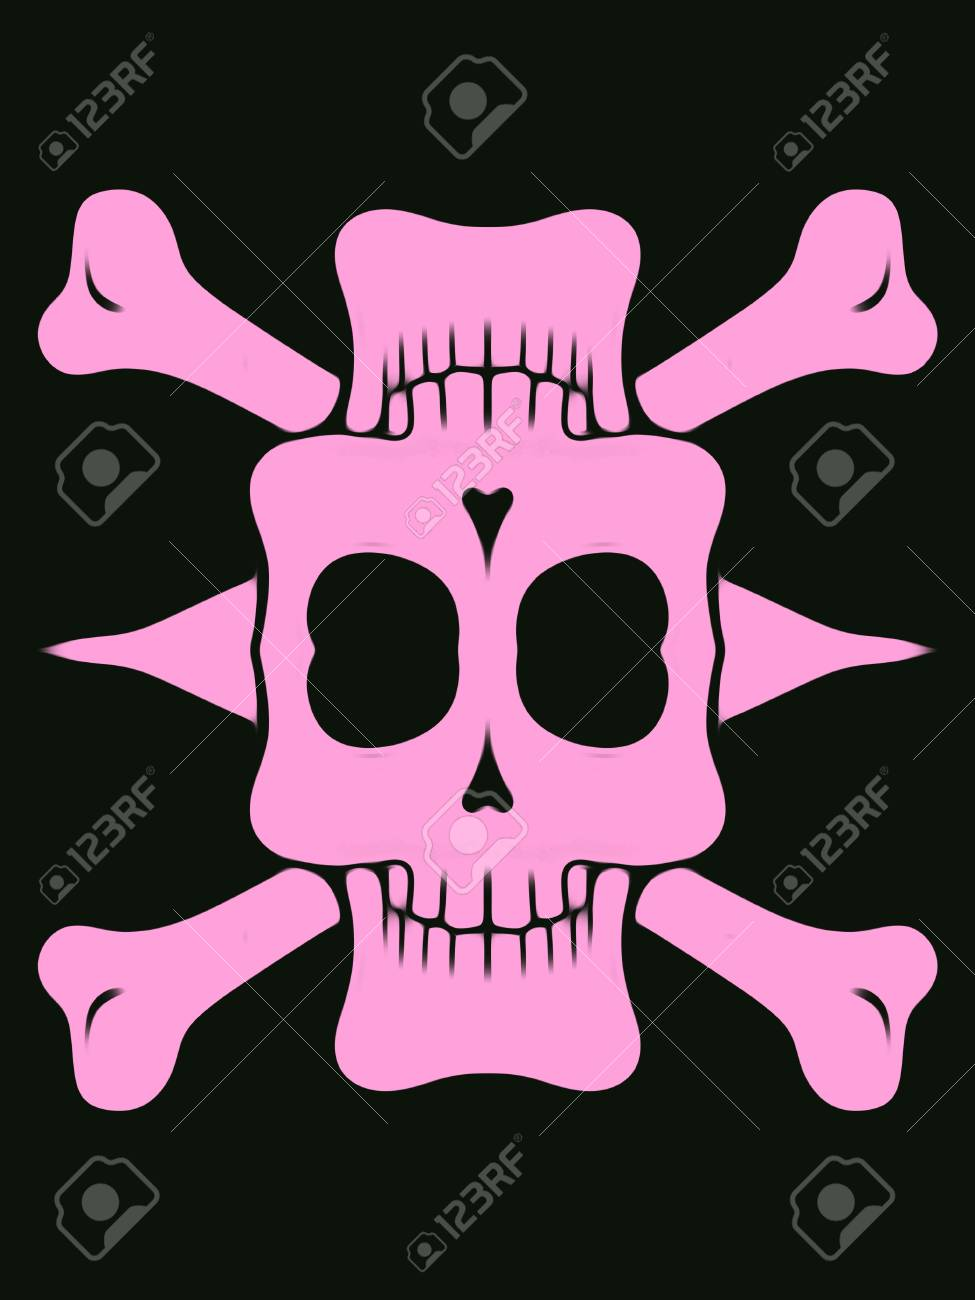 pink skull background